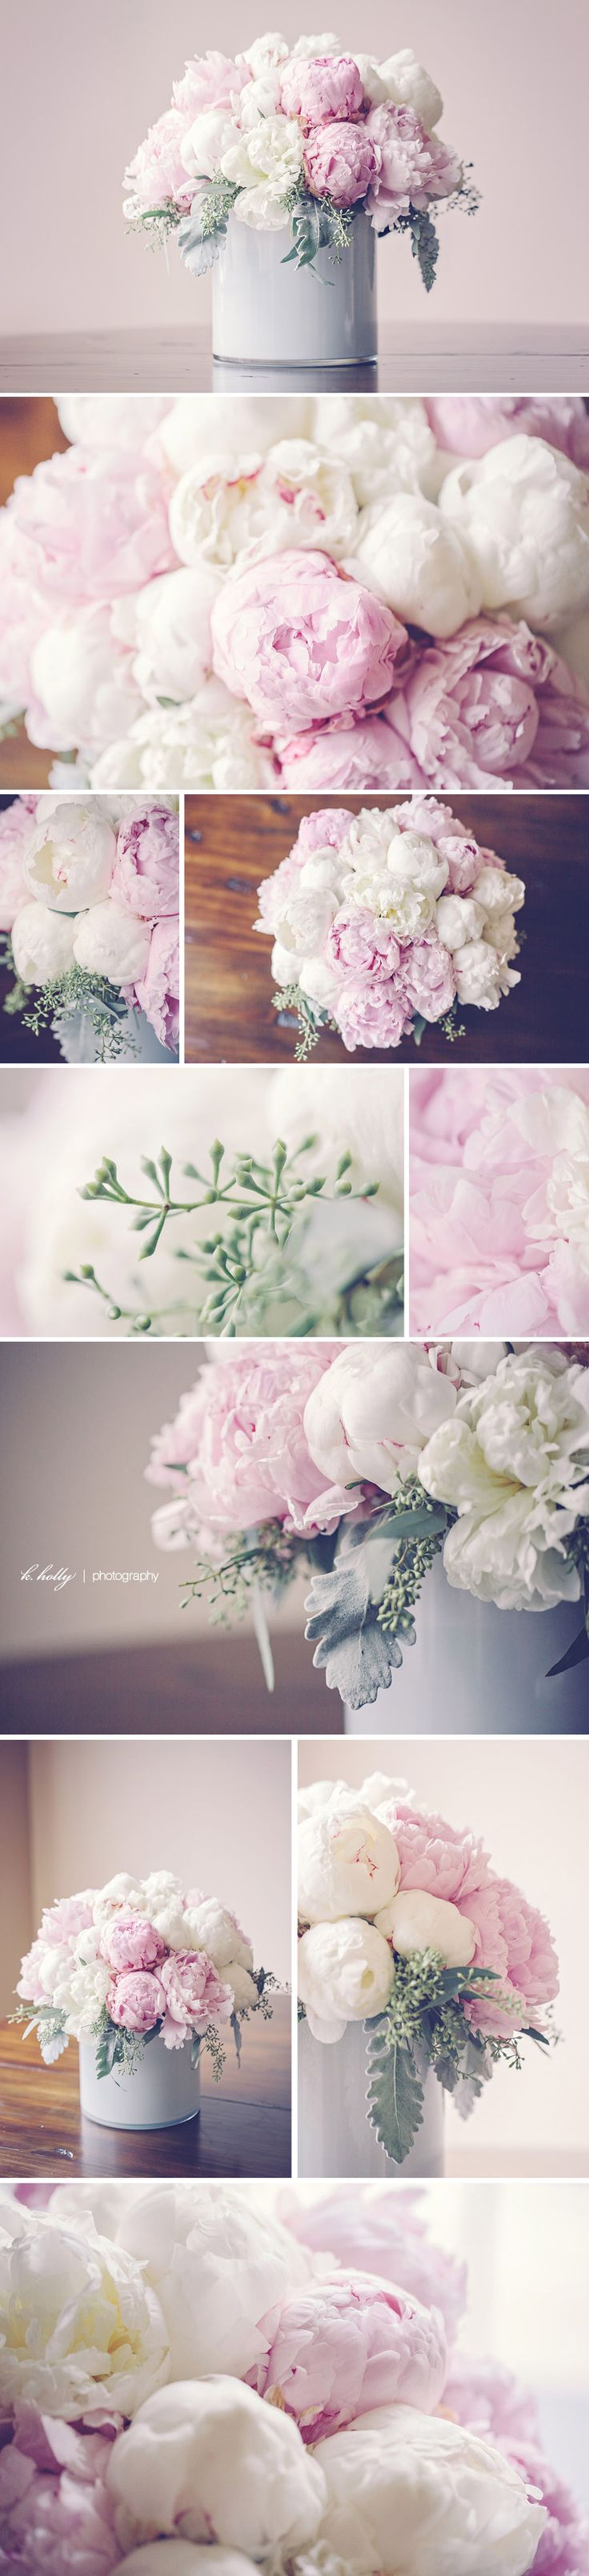 Peonies » k. holly | bay area wedding photographers | husband and wife team